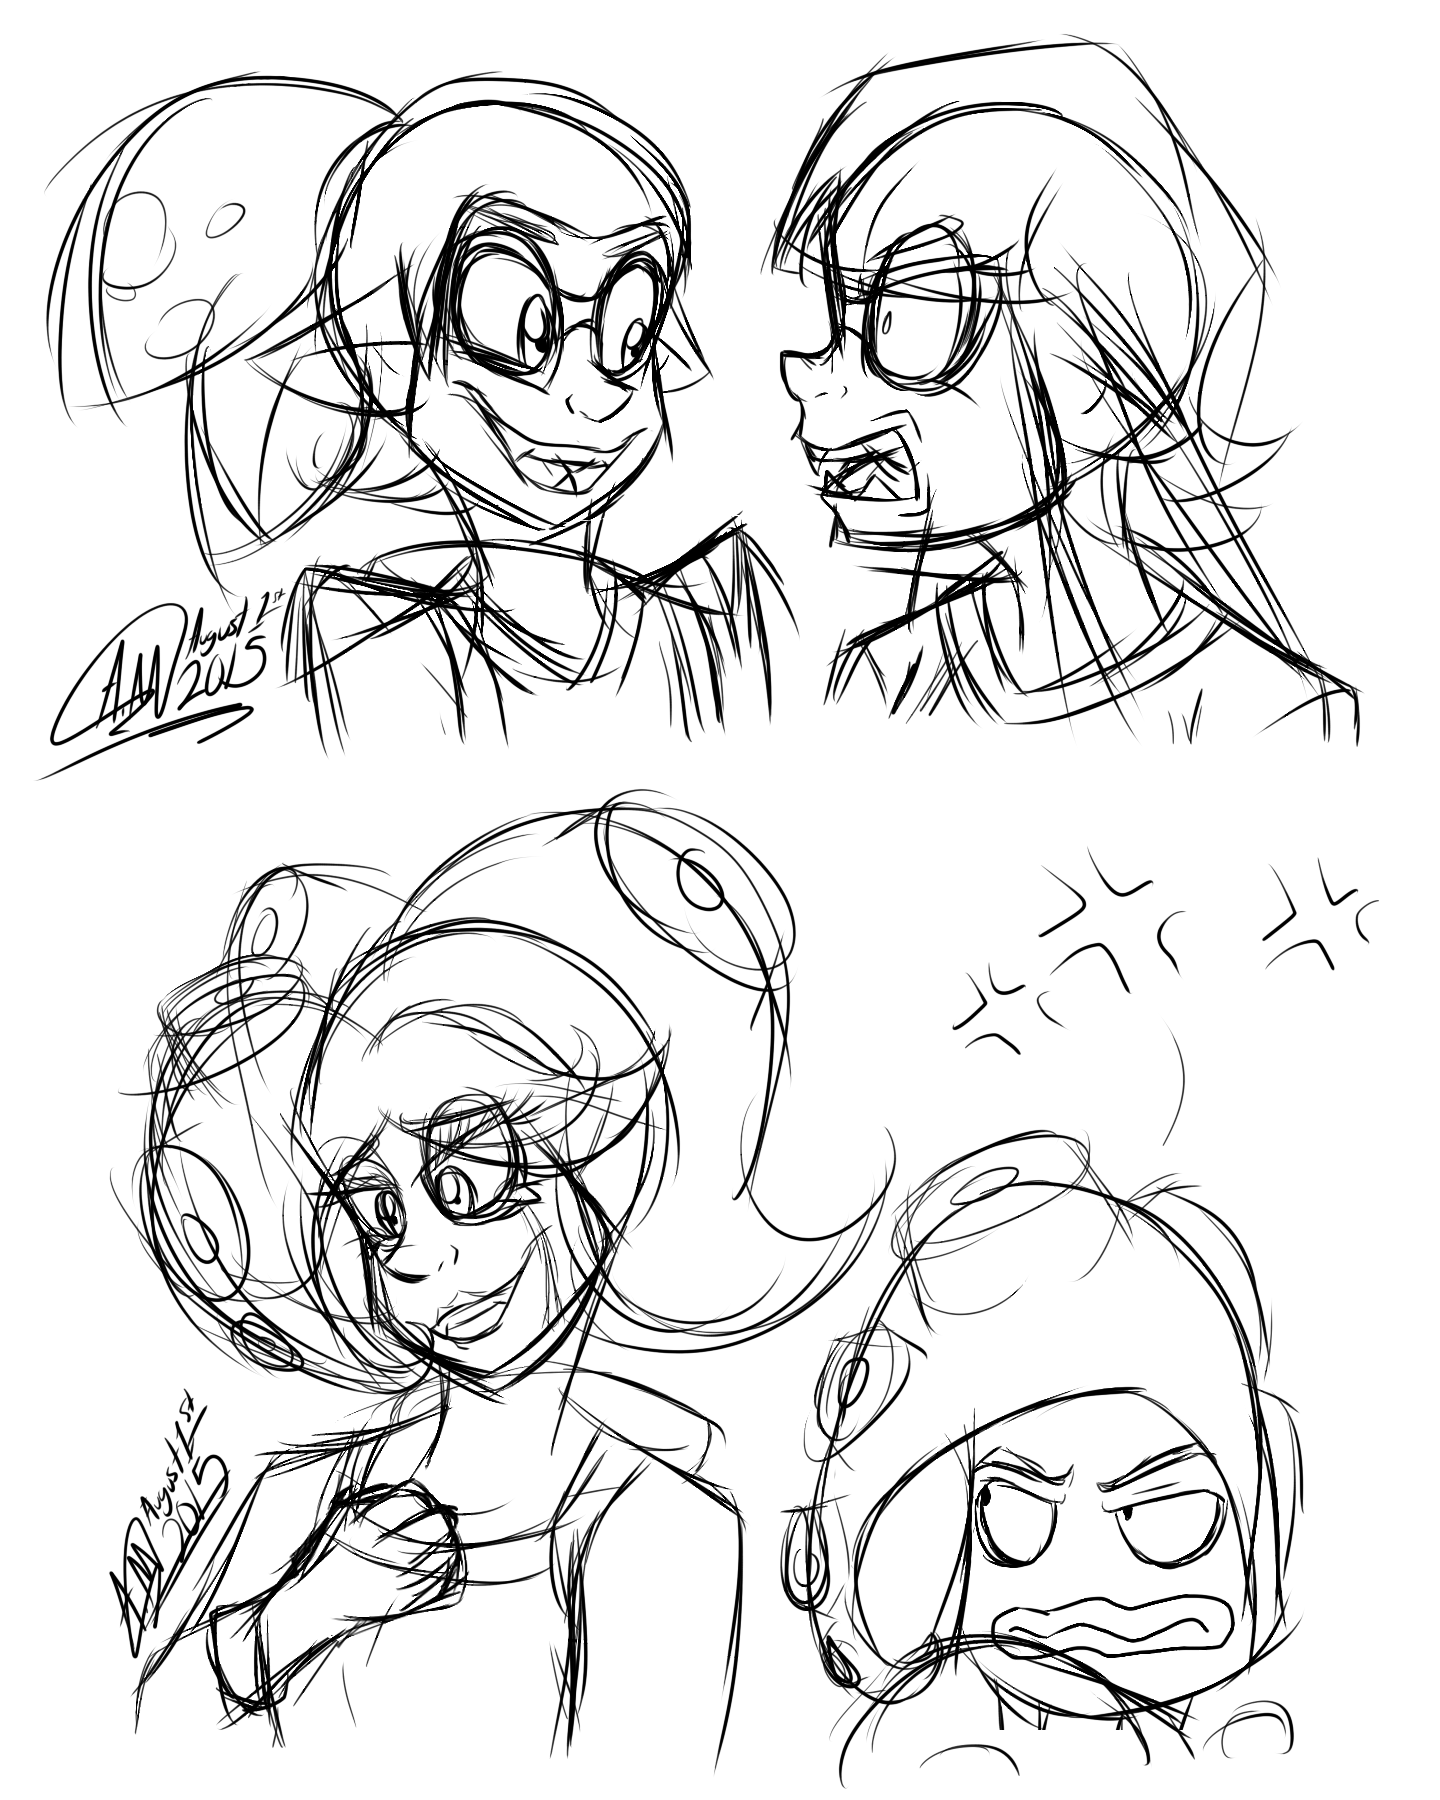 Splatoon sketch dump by asher ghostface on deviantart for Splatoon coloring pages